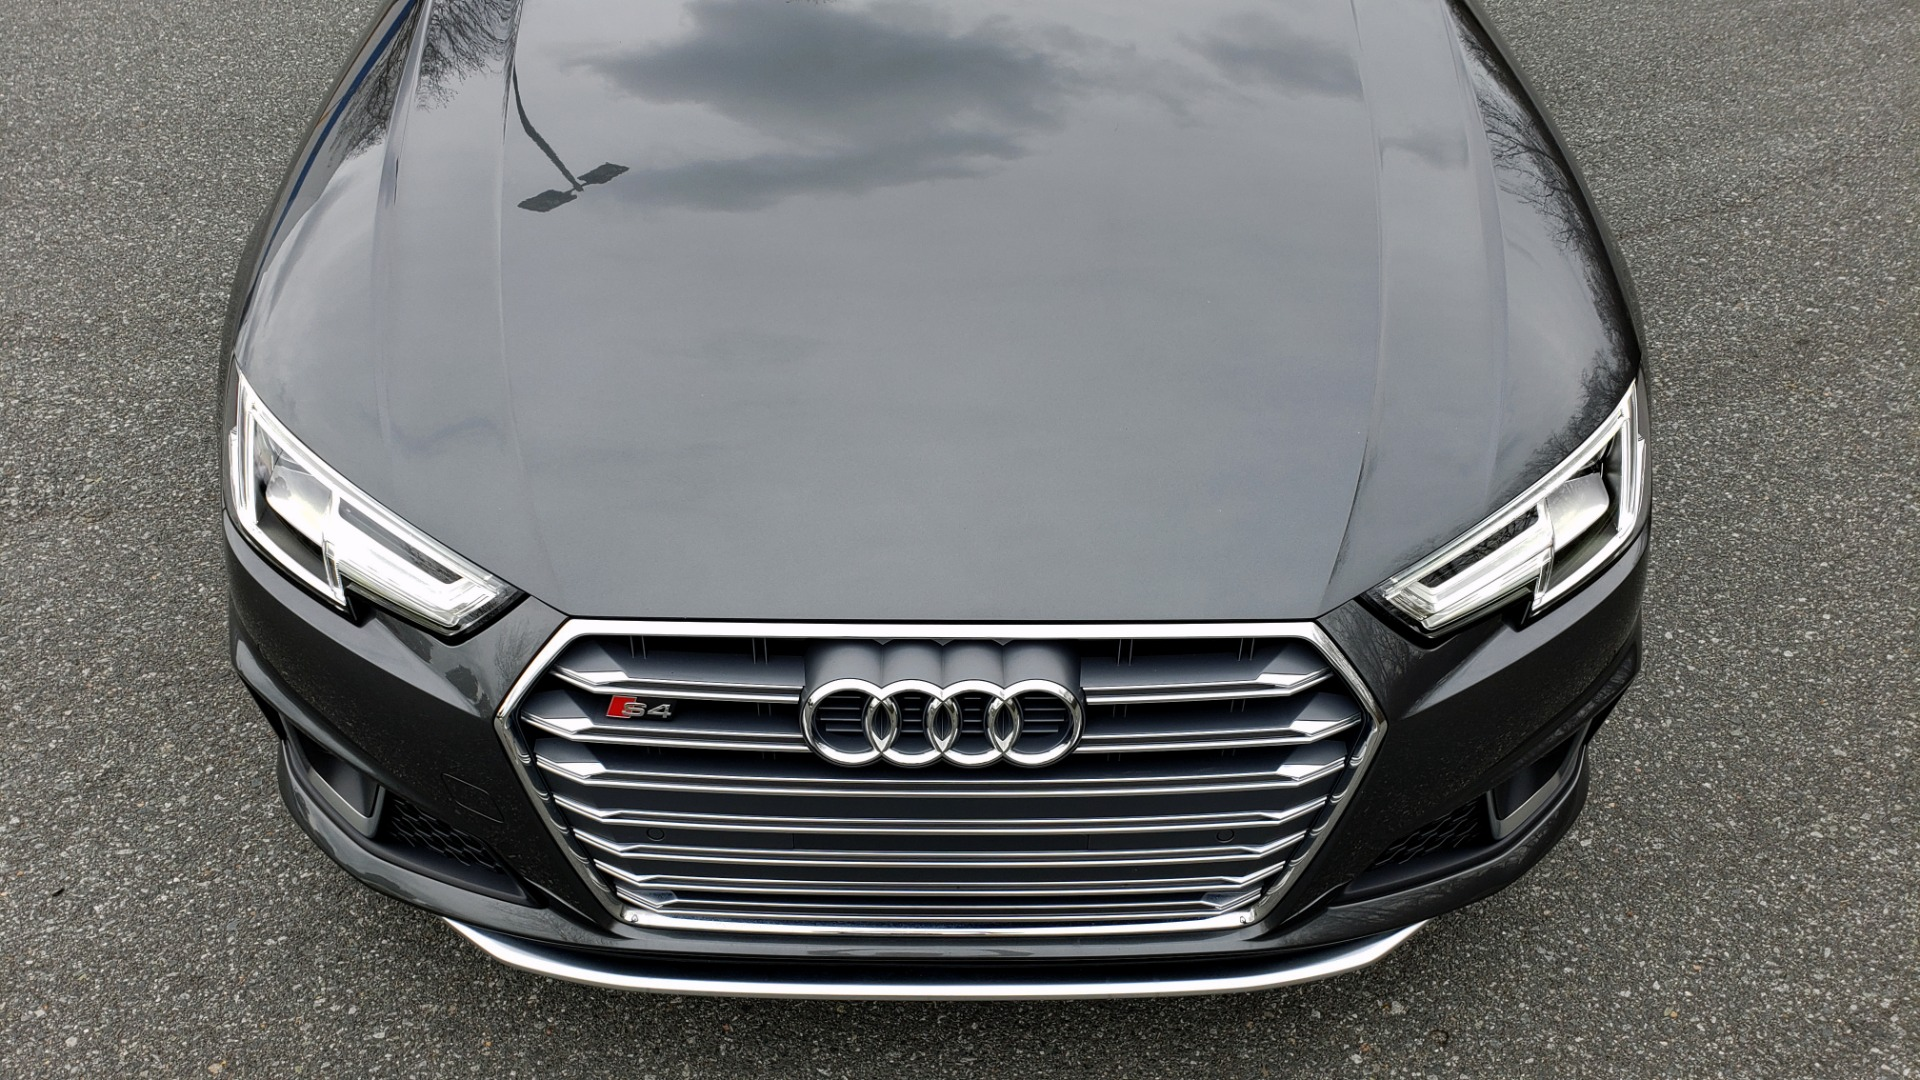 Used 2019 Audi S4 PREMIUM PLUS / AWD / NAV / SUNROOF / B&O SOUND / REARVIEW for sale Sold at Formula Imports in Charlotte NC 28227 14